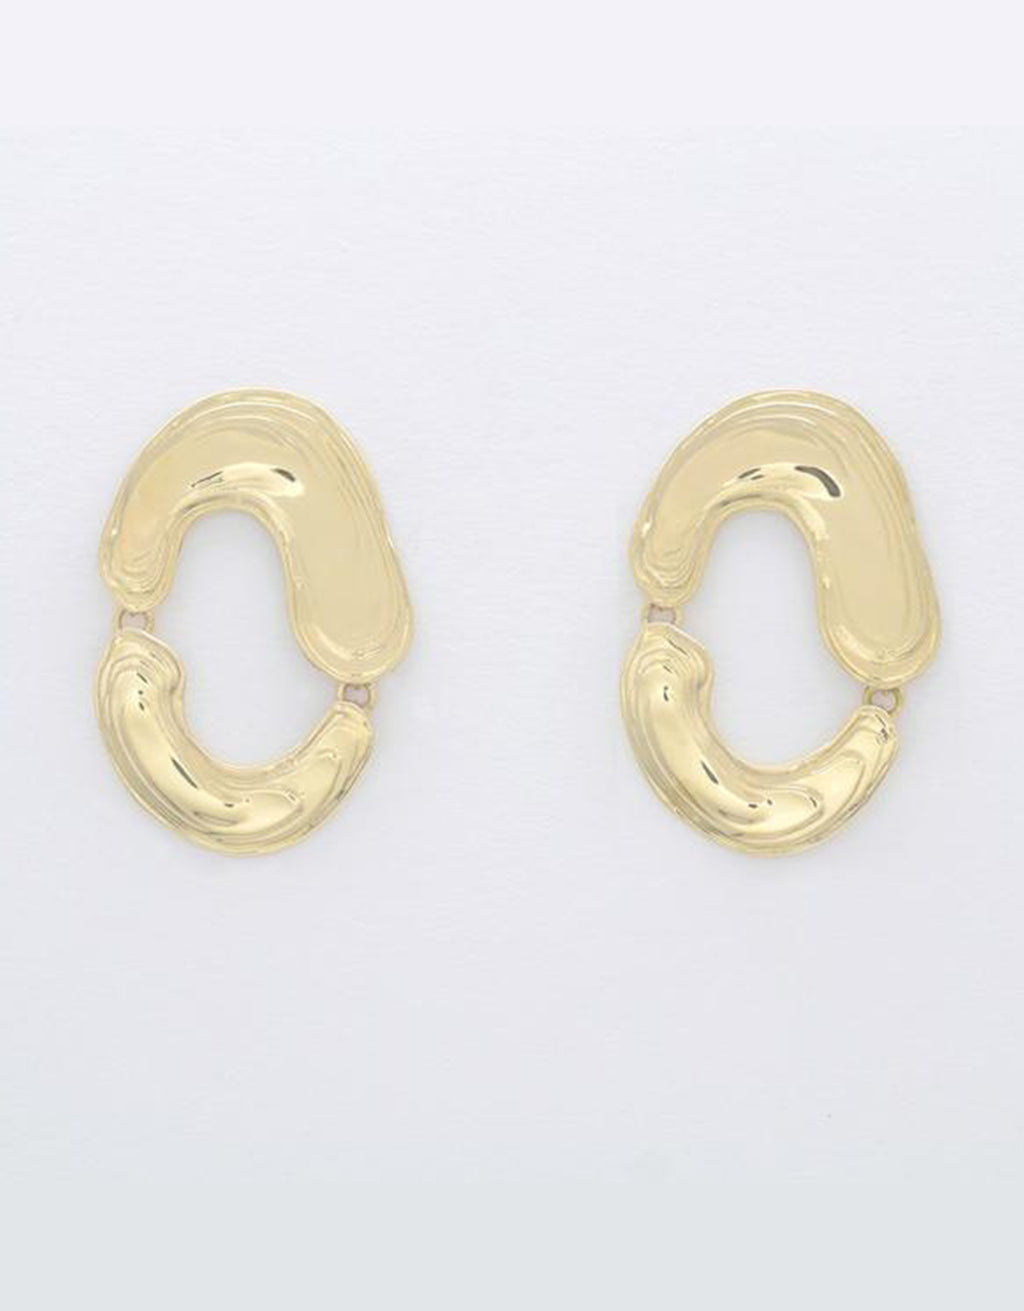 Swirling Swish Earrings by Leigh Miller. Available at FAWN Toronto.